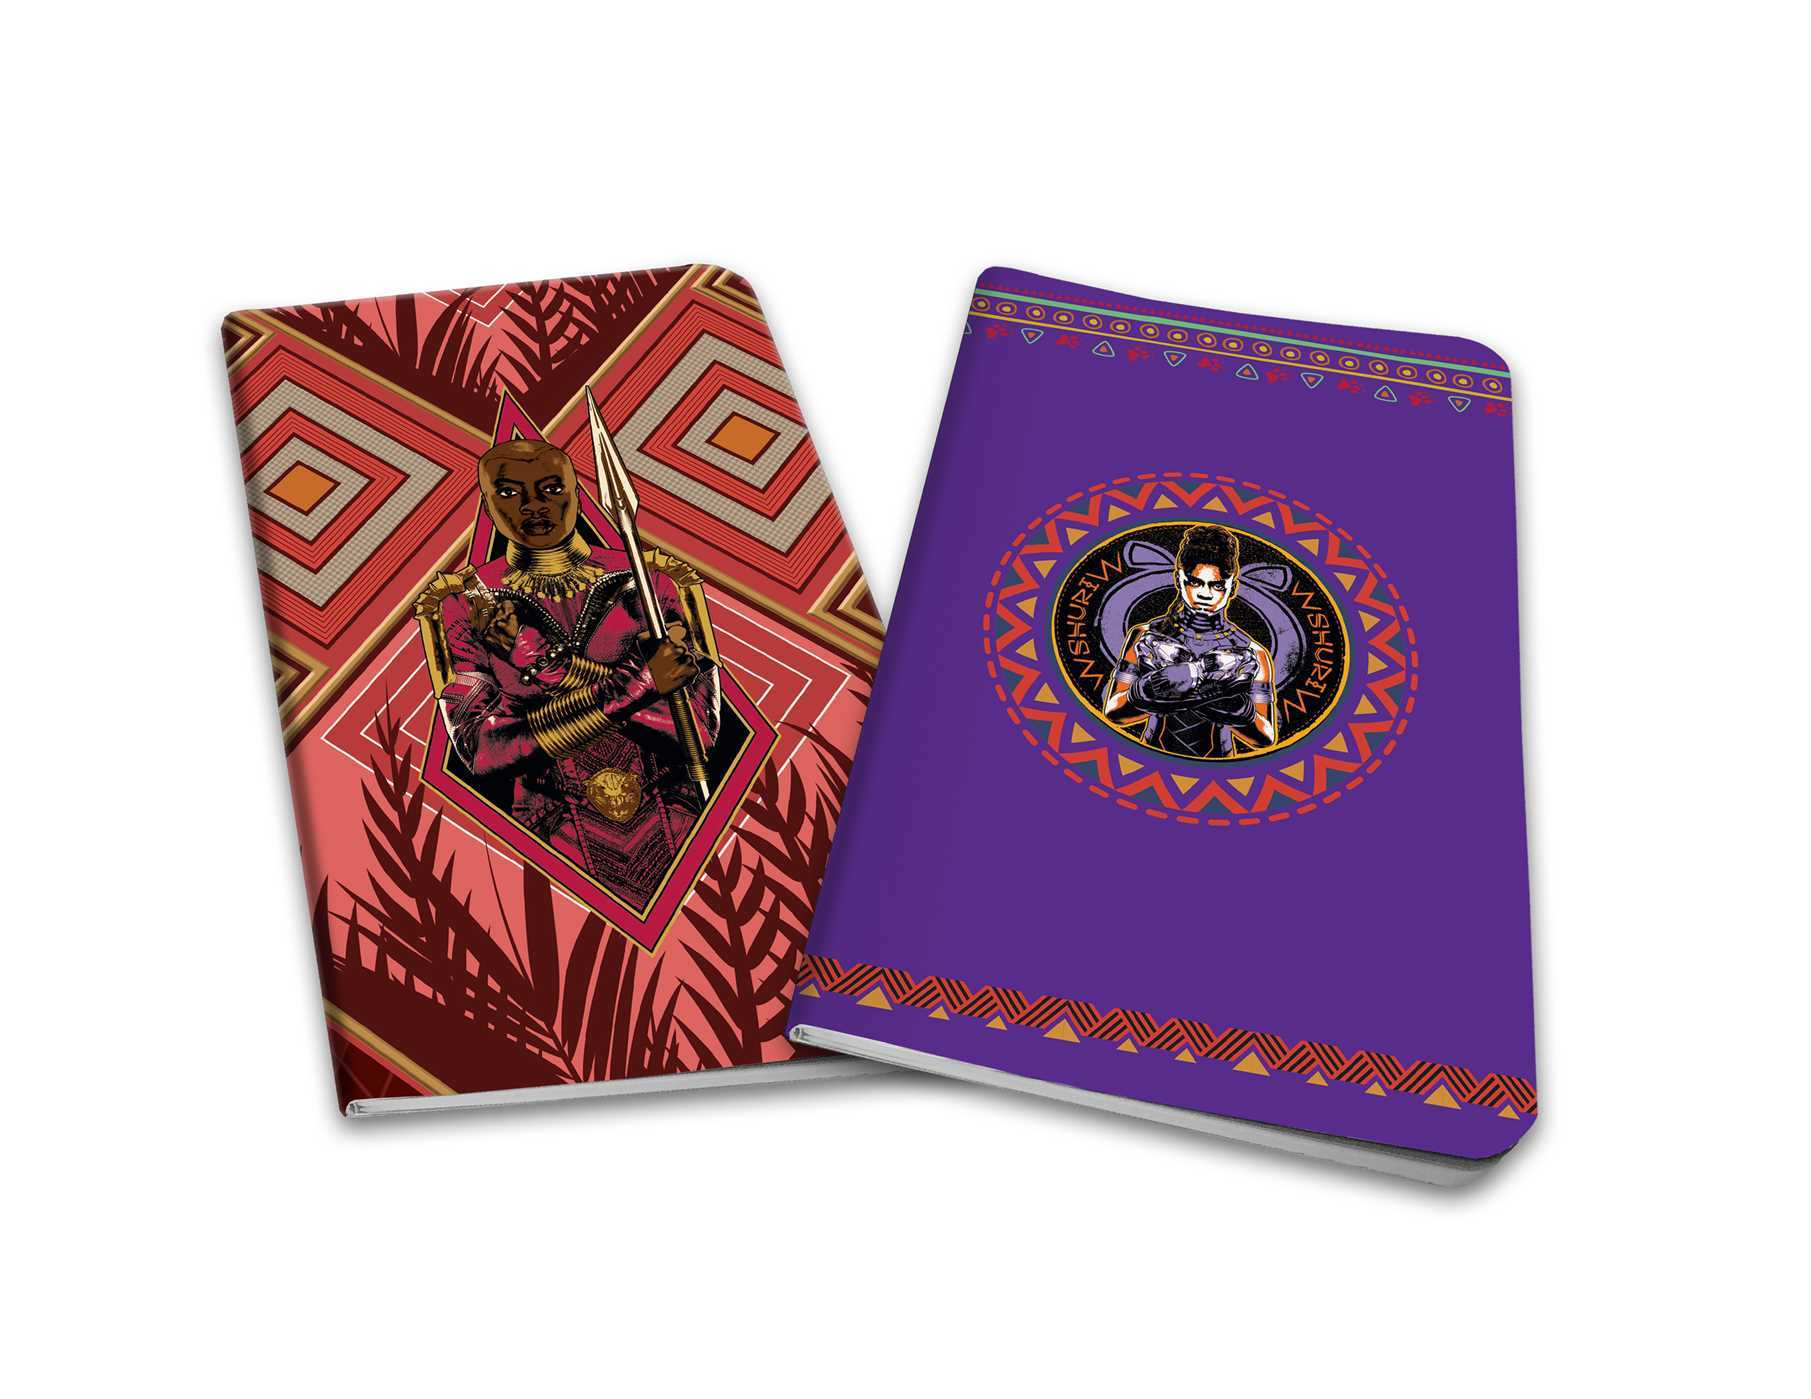 Marvel's Black Panther Character Notebook Collection (Set of 2): Women of Wakanda